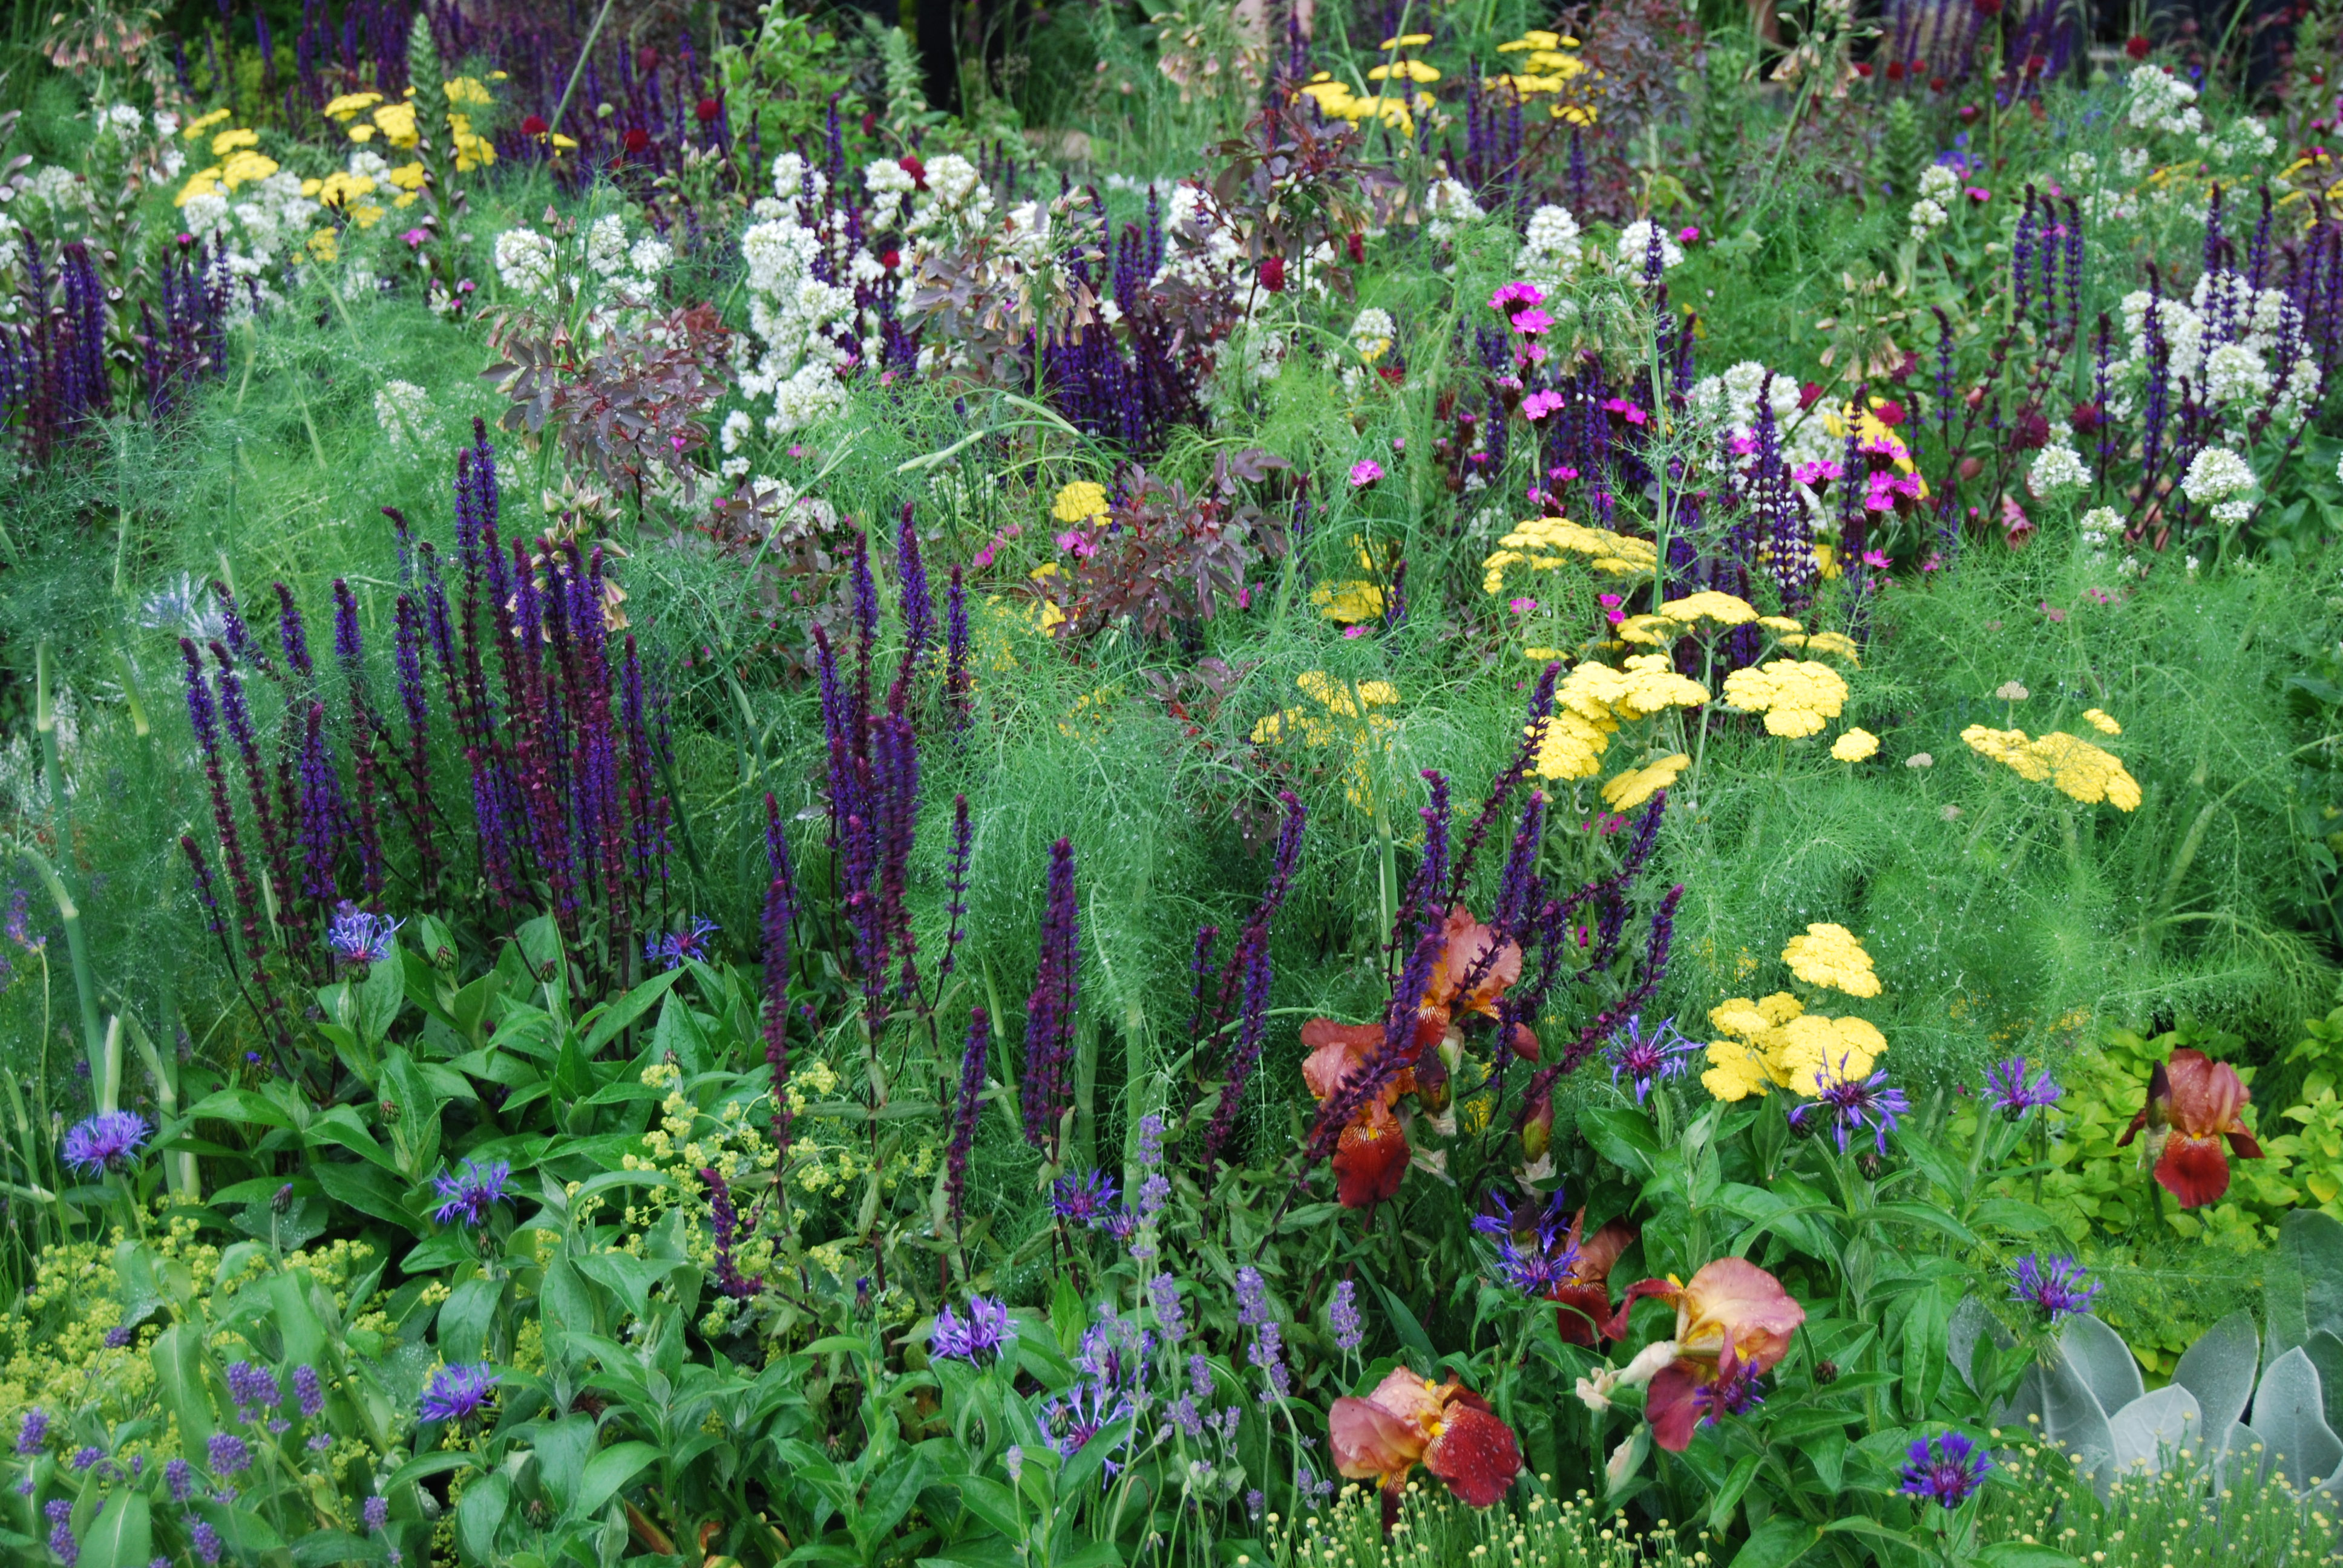 Vegetable garden design ideas with beautiful vegetable garden design - Beauty And The Beets Make A Truly Mixed Border Styleseed